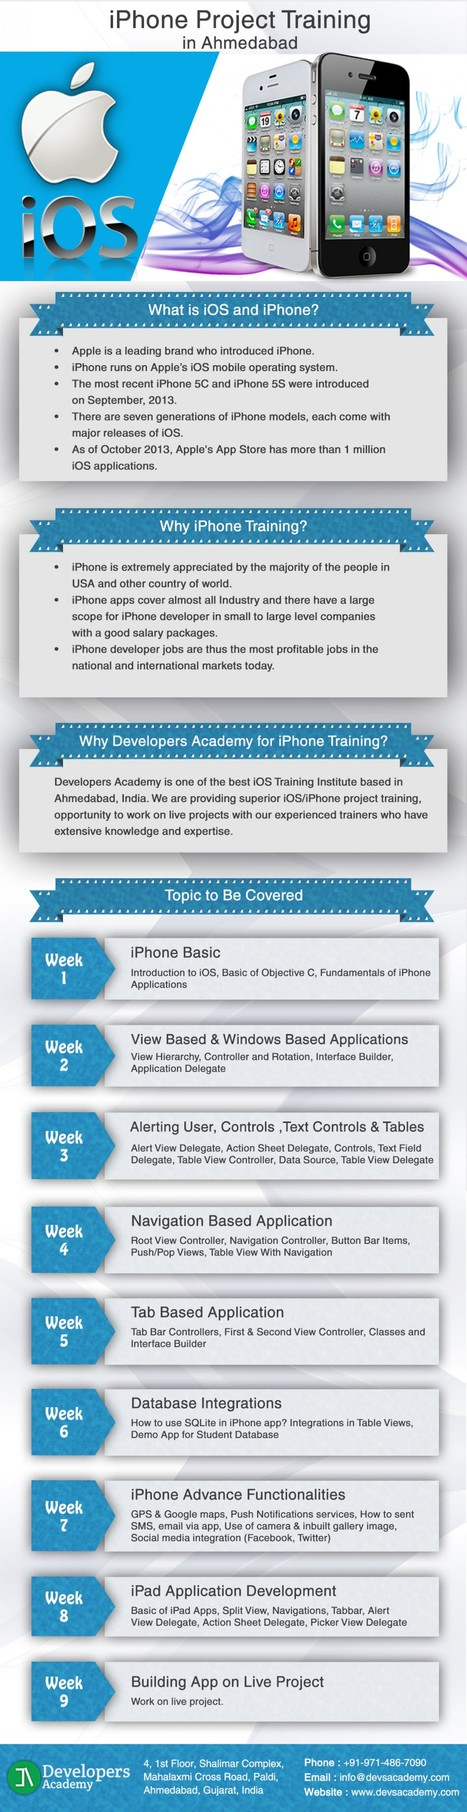 iPhone Project Training in Ahmedabad | iPhone - Android Traning | Scoop.it